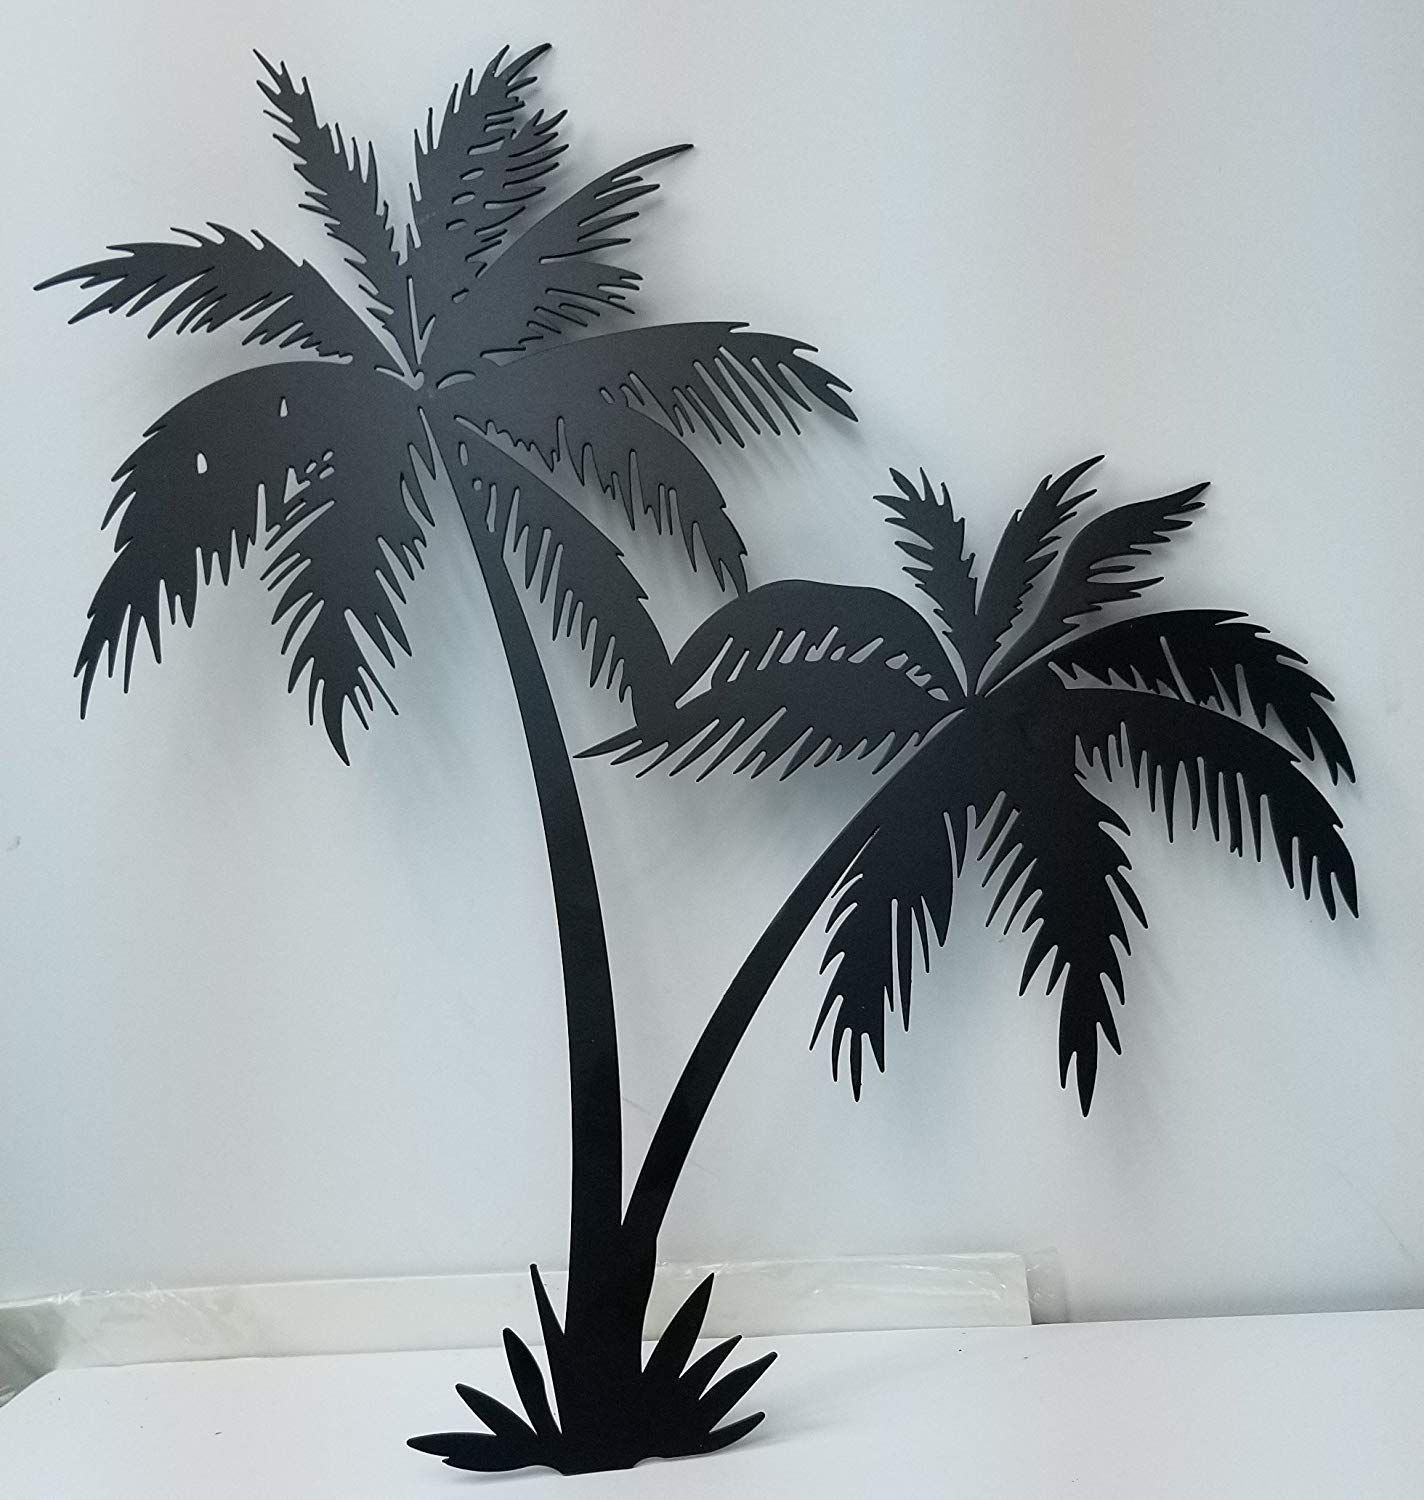 Best Palm Tree Wall Art And Palm Tree Wall Decor For 2020 Beachfront Decor Palm Tree Wall Art Palm Tree Metal Wall Art Palm Tree Art